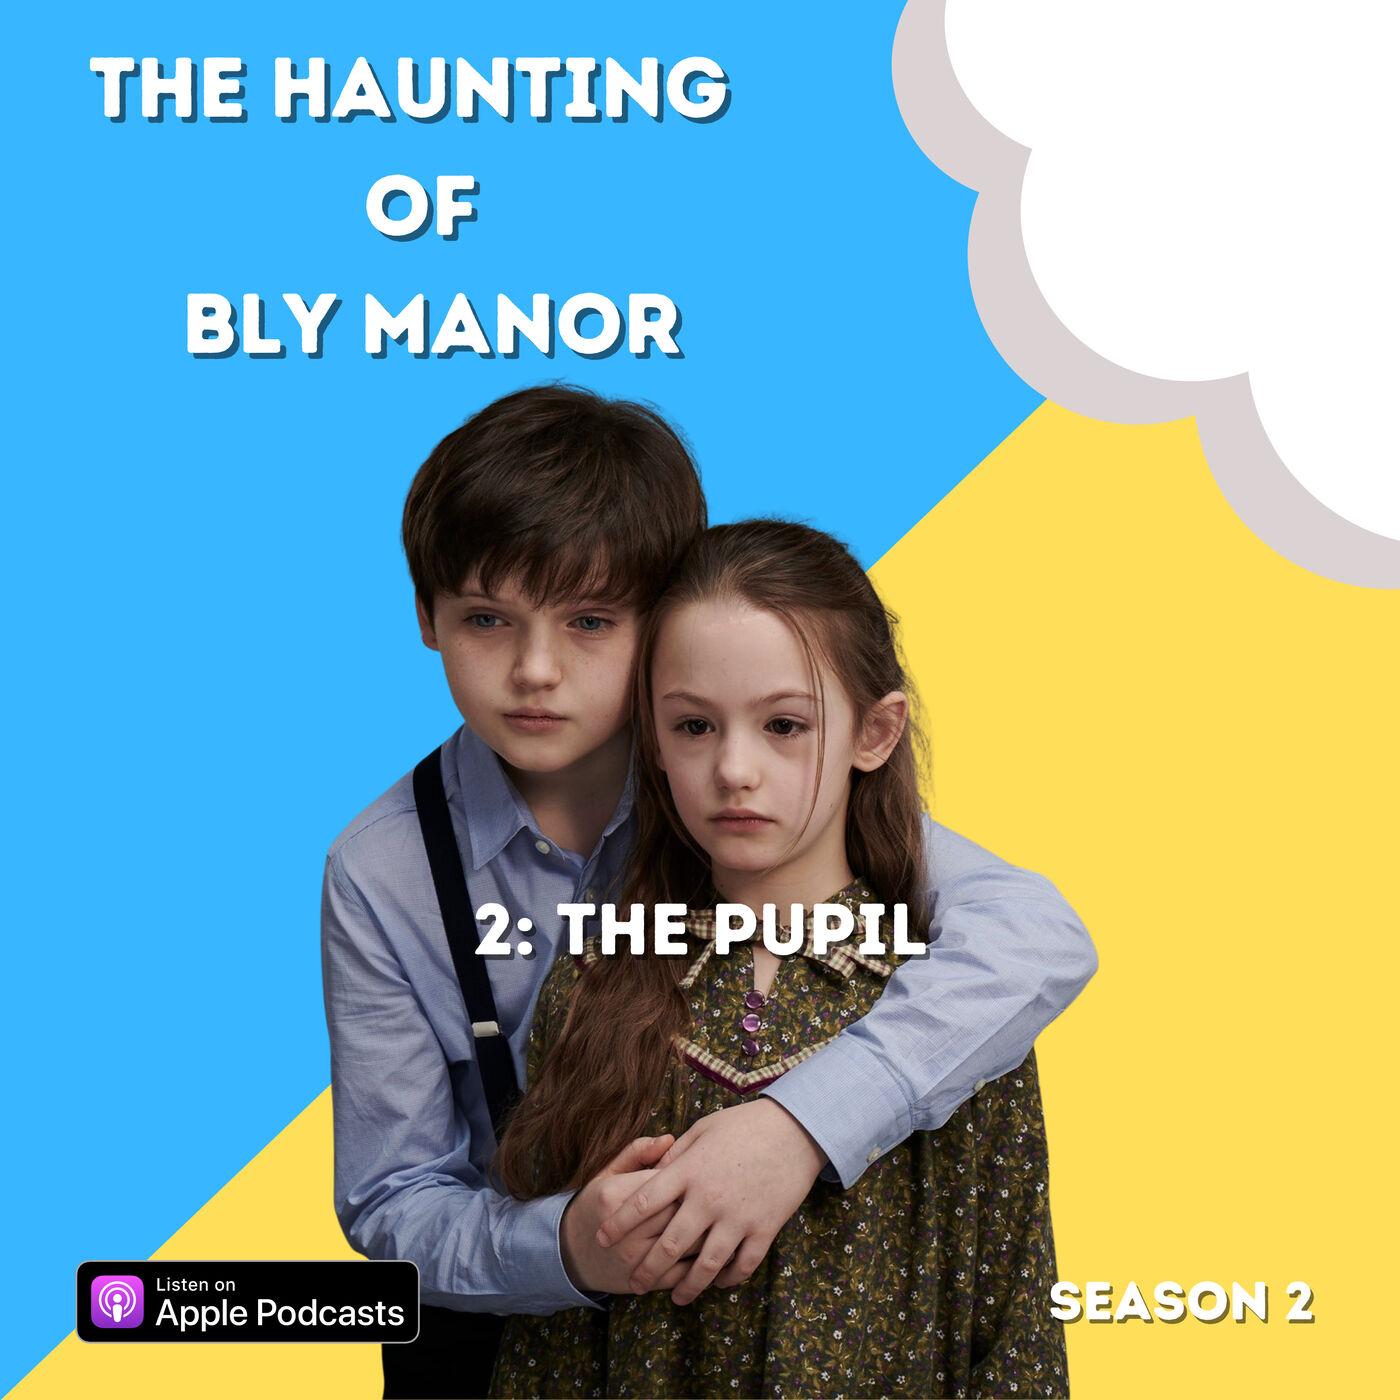 The Haunting of Bly Manor 2: The Pupil